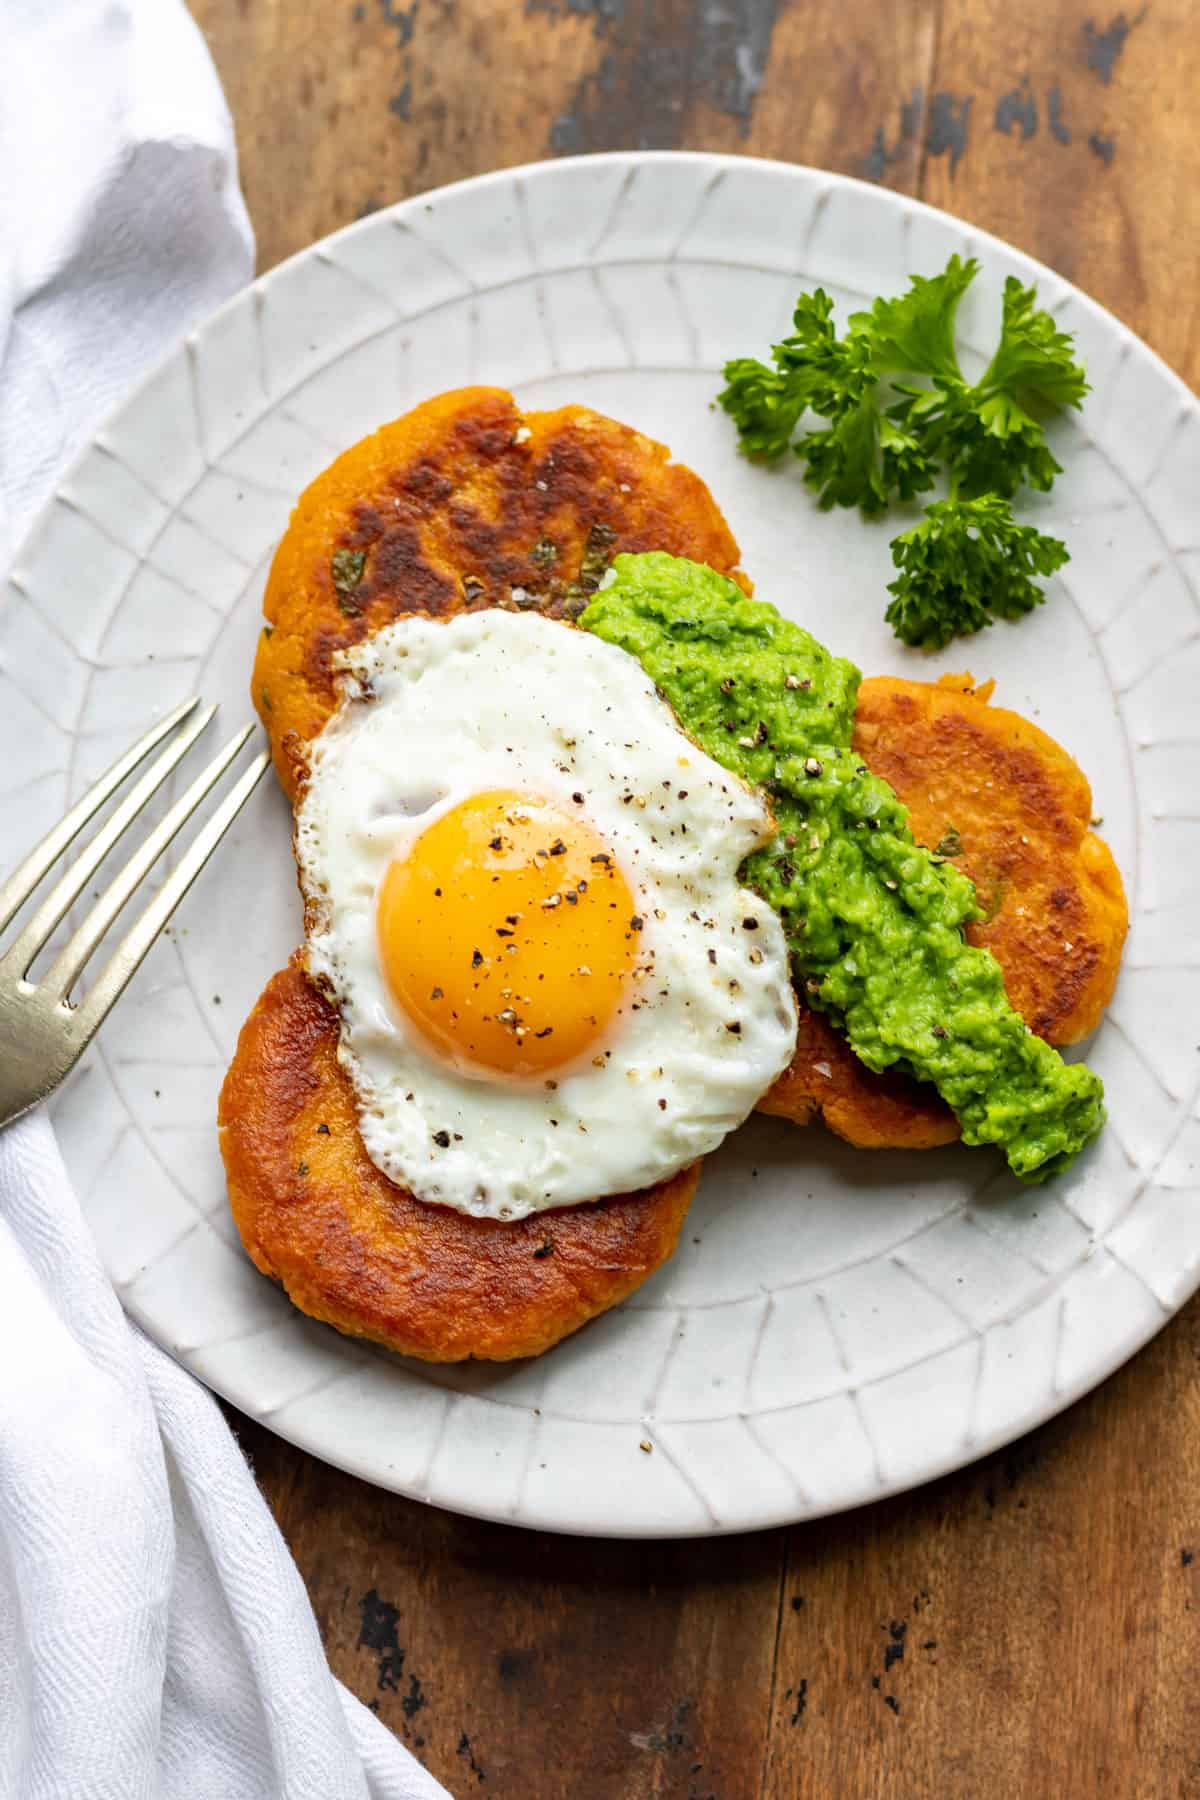 Plate of sweet potato patties topped with pea puree and a fried egg.